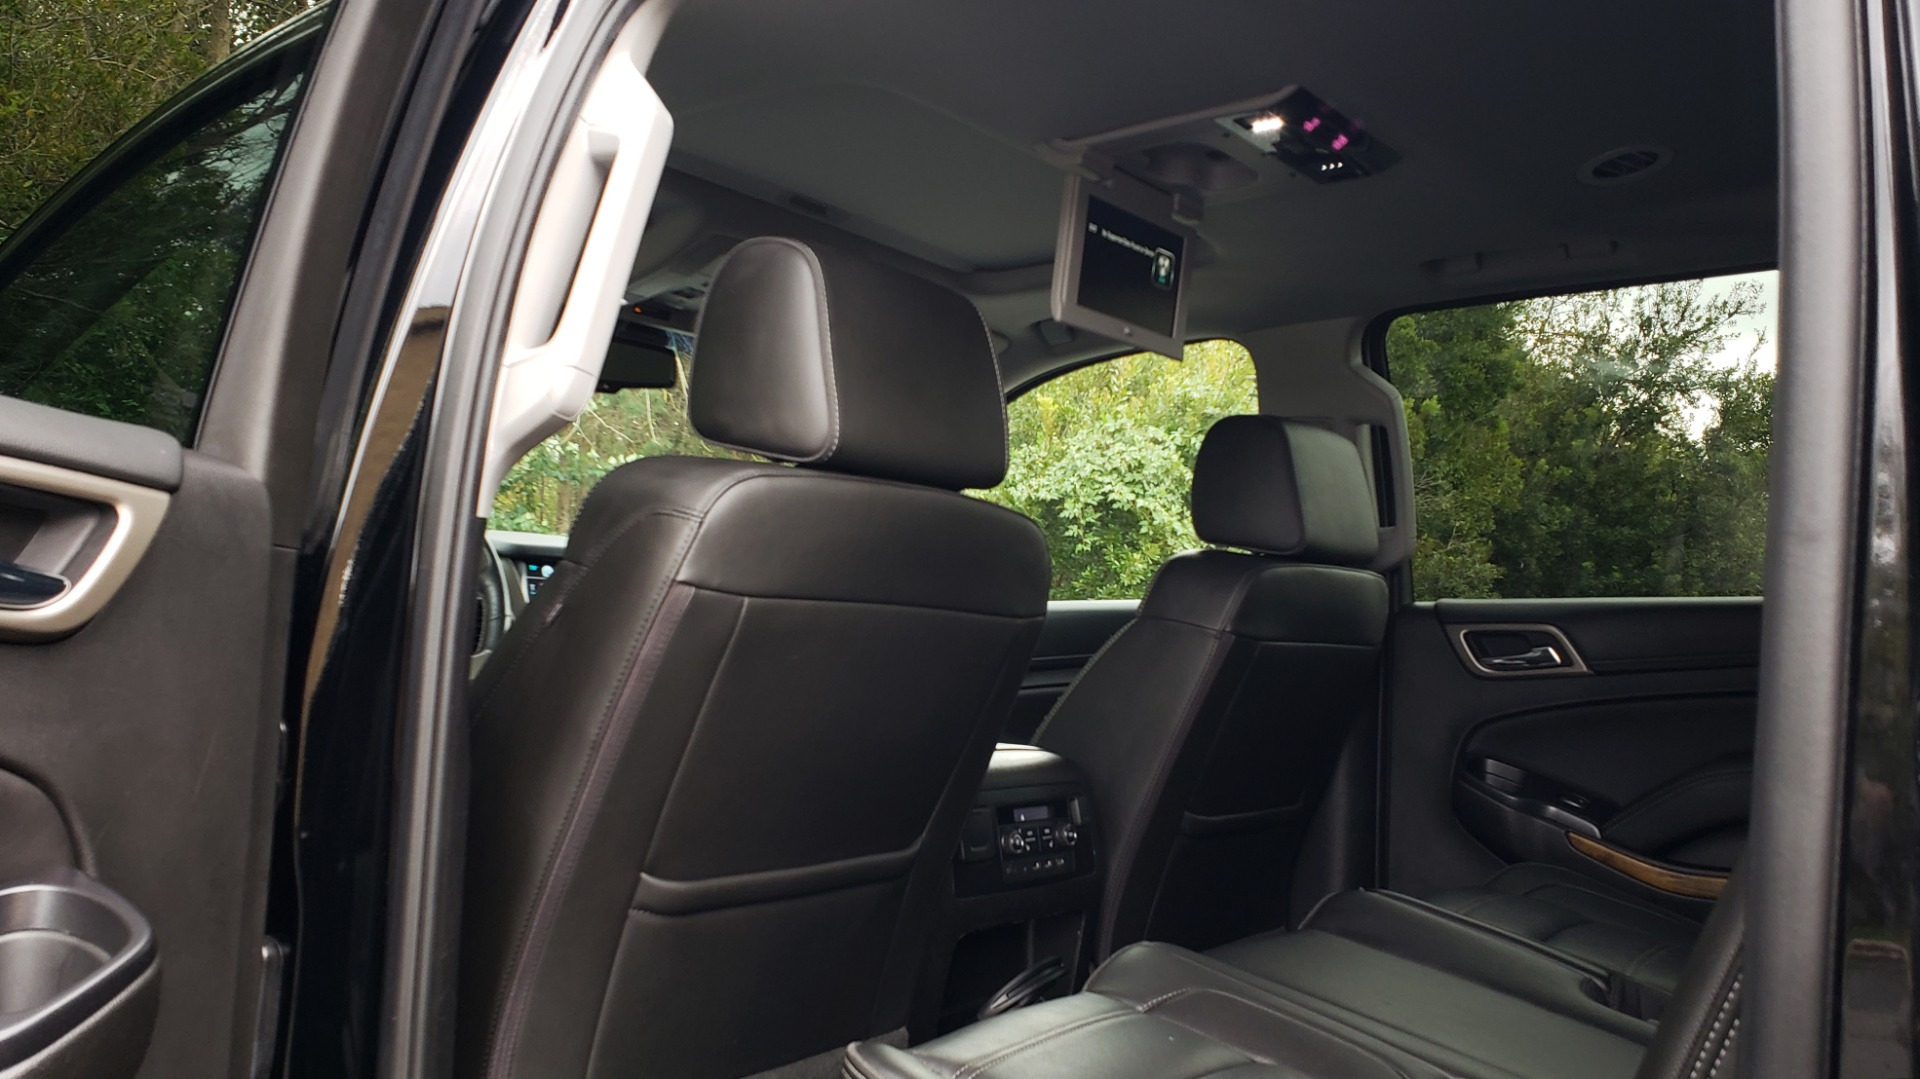 Used 2017 GMC YUKON XL DENALI 4WD / NAV / SUNROOF / ENT / 3-ROWS / BOSE / REARVIEW for sale Sold at Formula Imports in Charlotte NC 28227 67